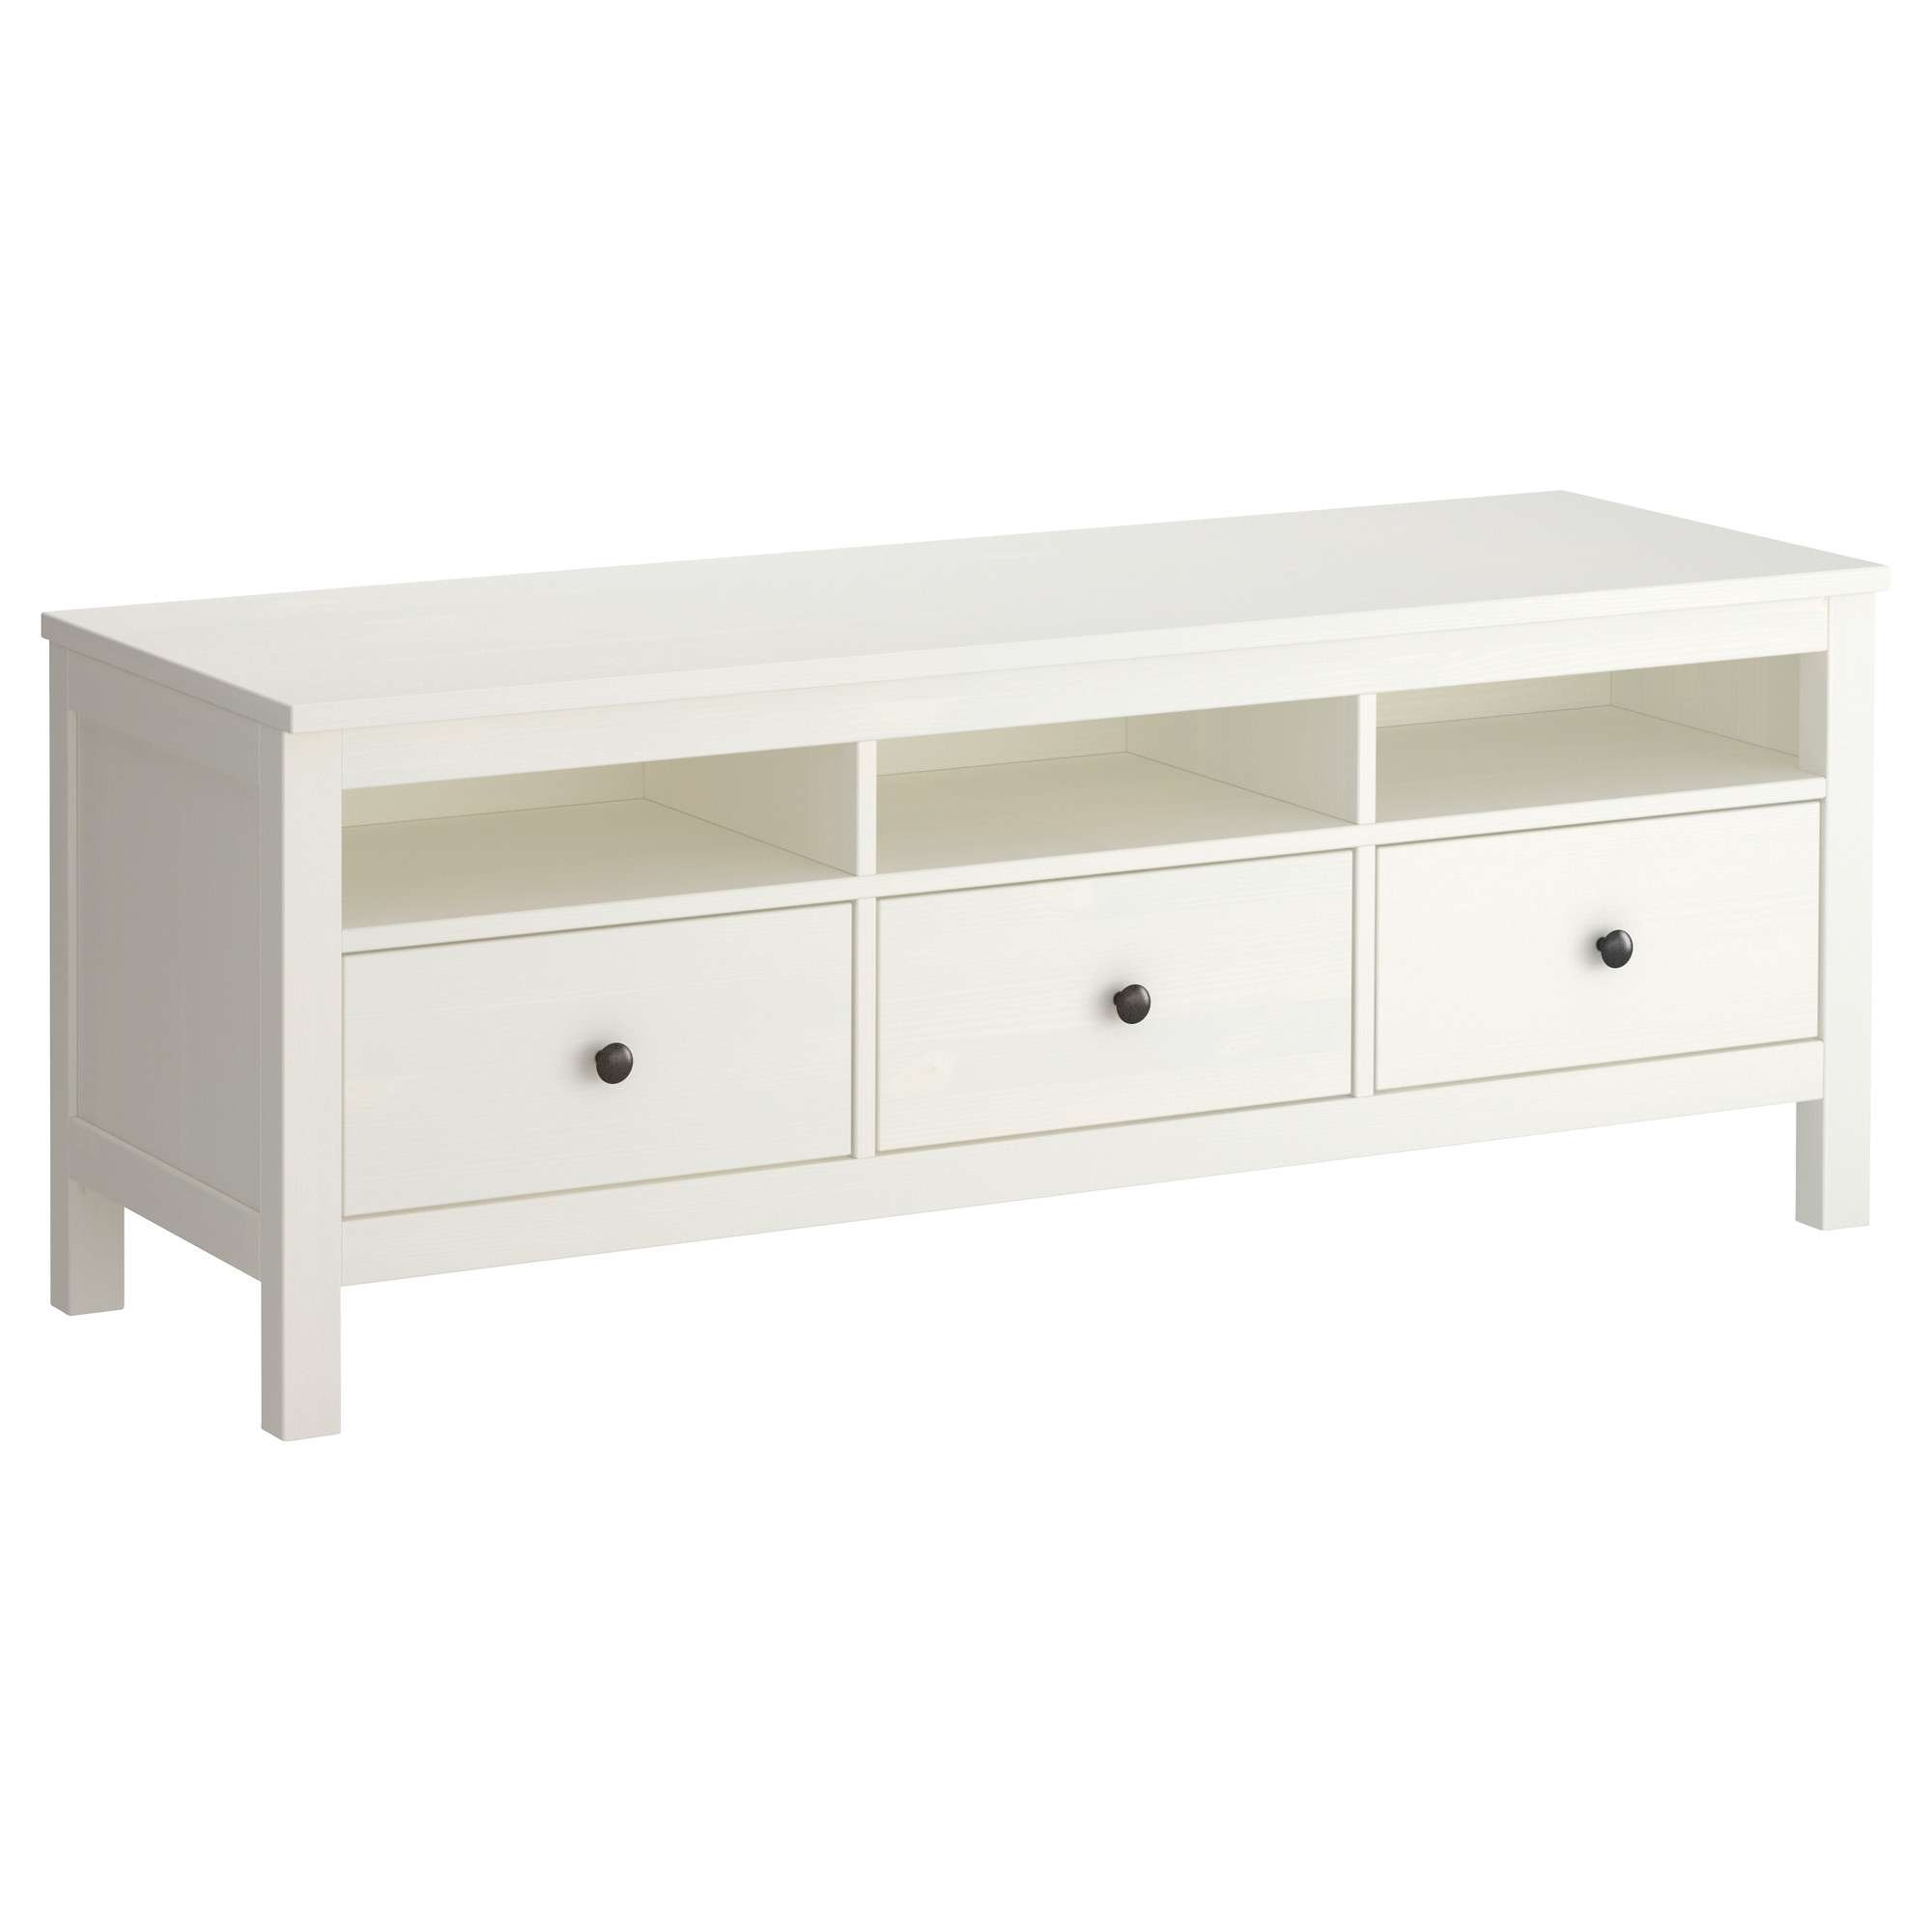 Hemnes Tv Bench White Stain 148X47 Cm – Ikea Throughout White And Wood Tv Stands (View 6 of 15)